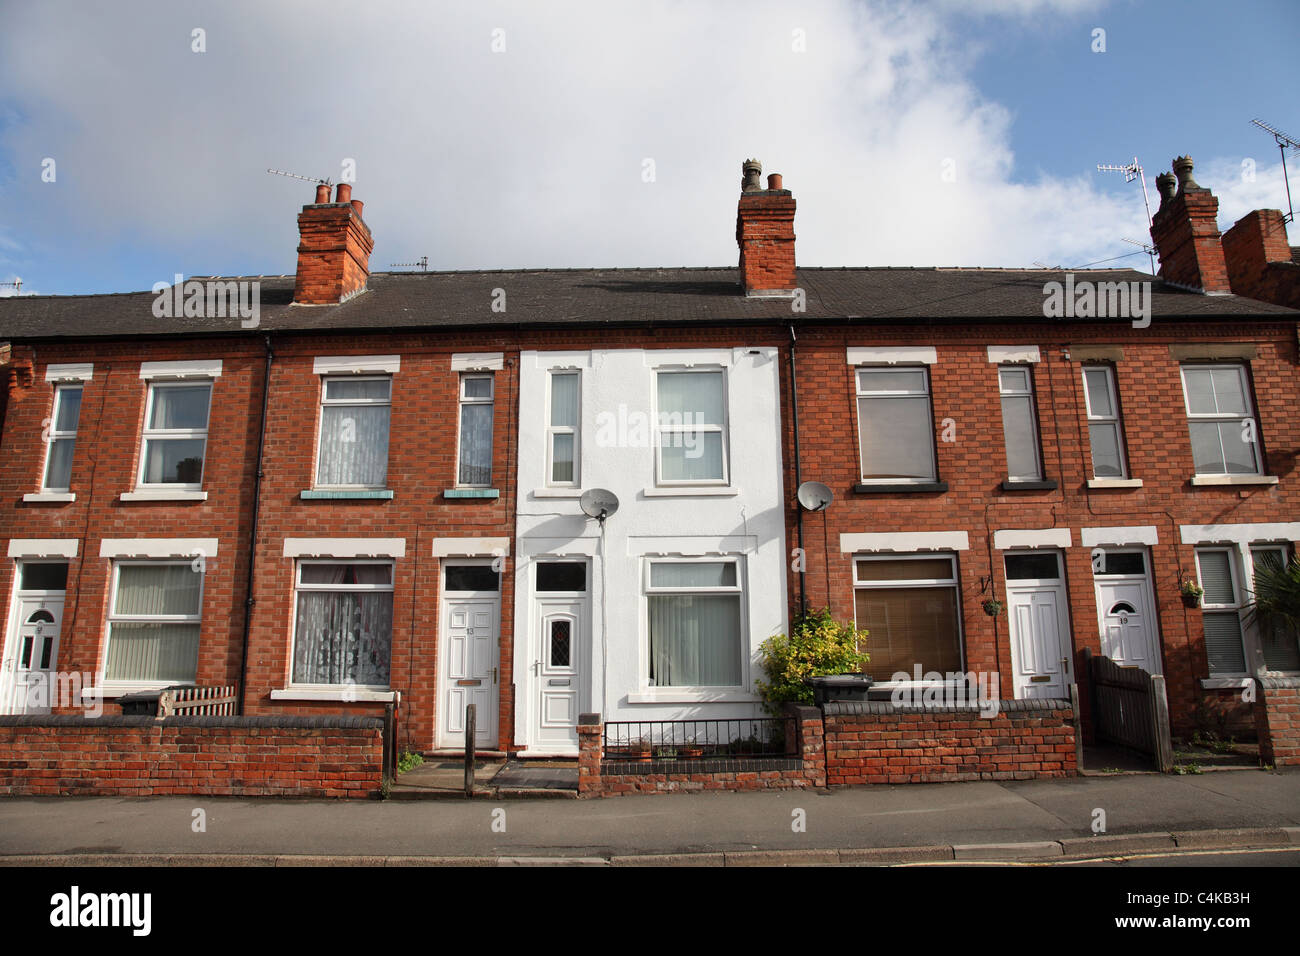 Terraced houses in Arnold, Nottingham, England, U.K. Stock Photo